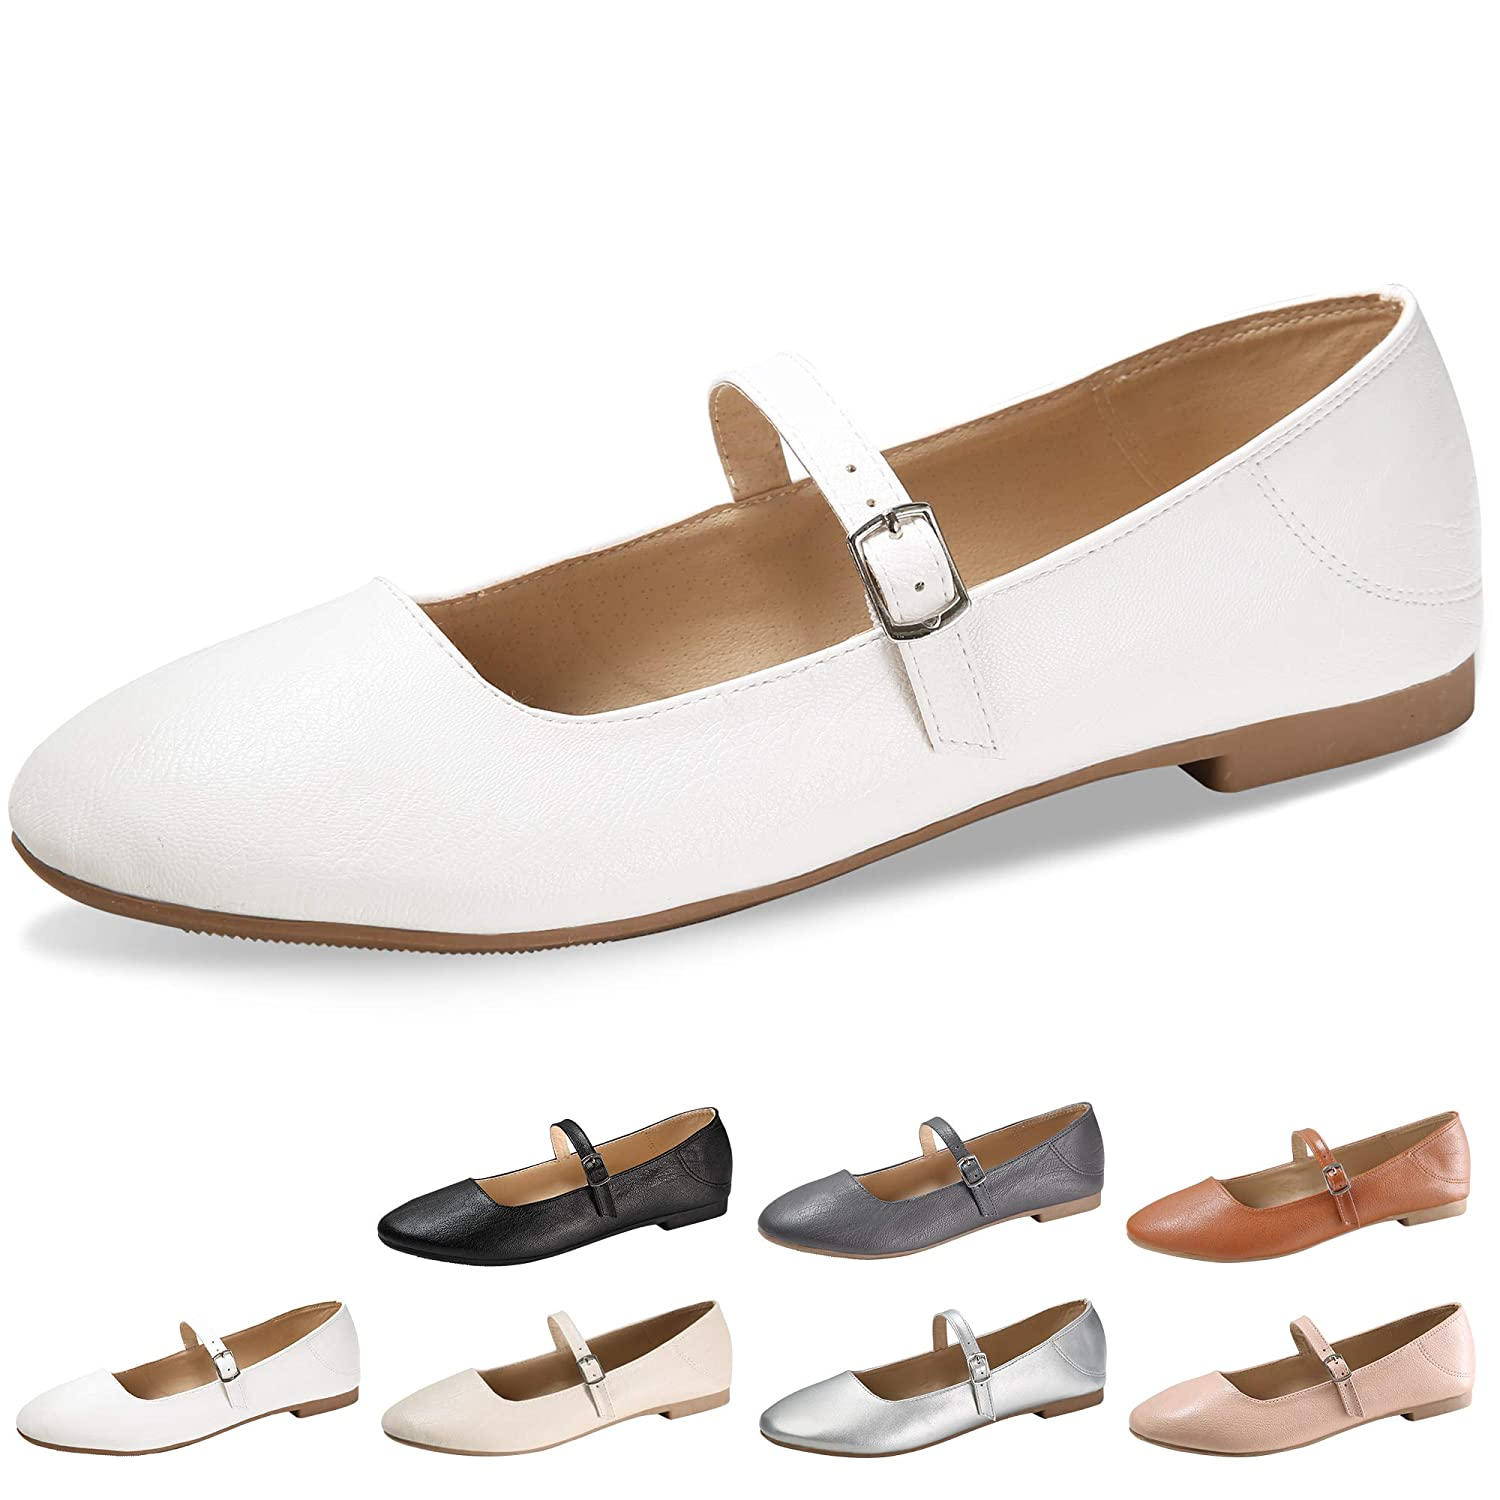 Women's Vintage Shoes & Boots to Buy CINAK Flats Mary Jane Shoes Womens Casual Comfortable Walking Classic Buckle Ankle Strap Style Ballet Slip On $21.99 AT vintagedancer.com